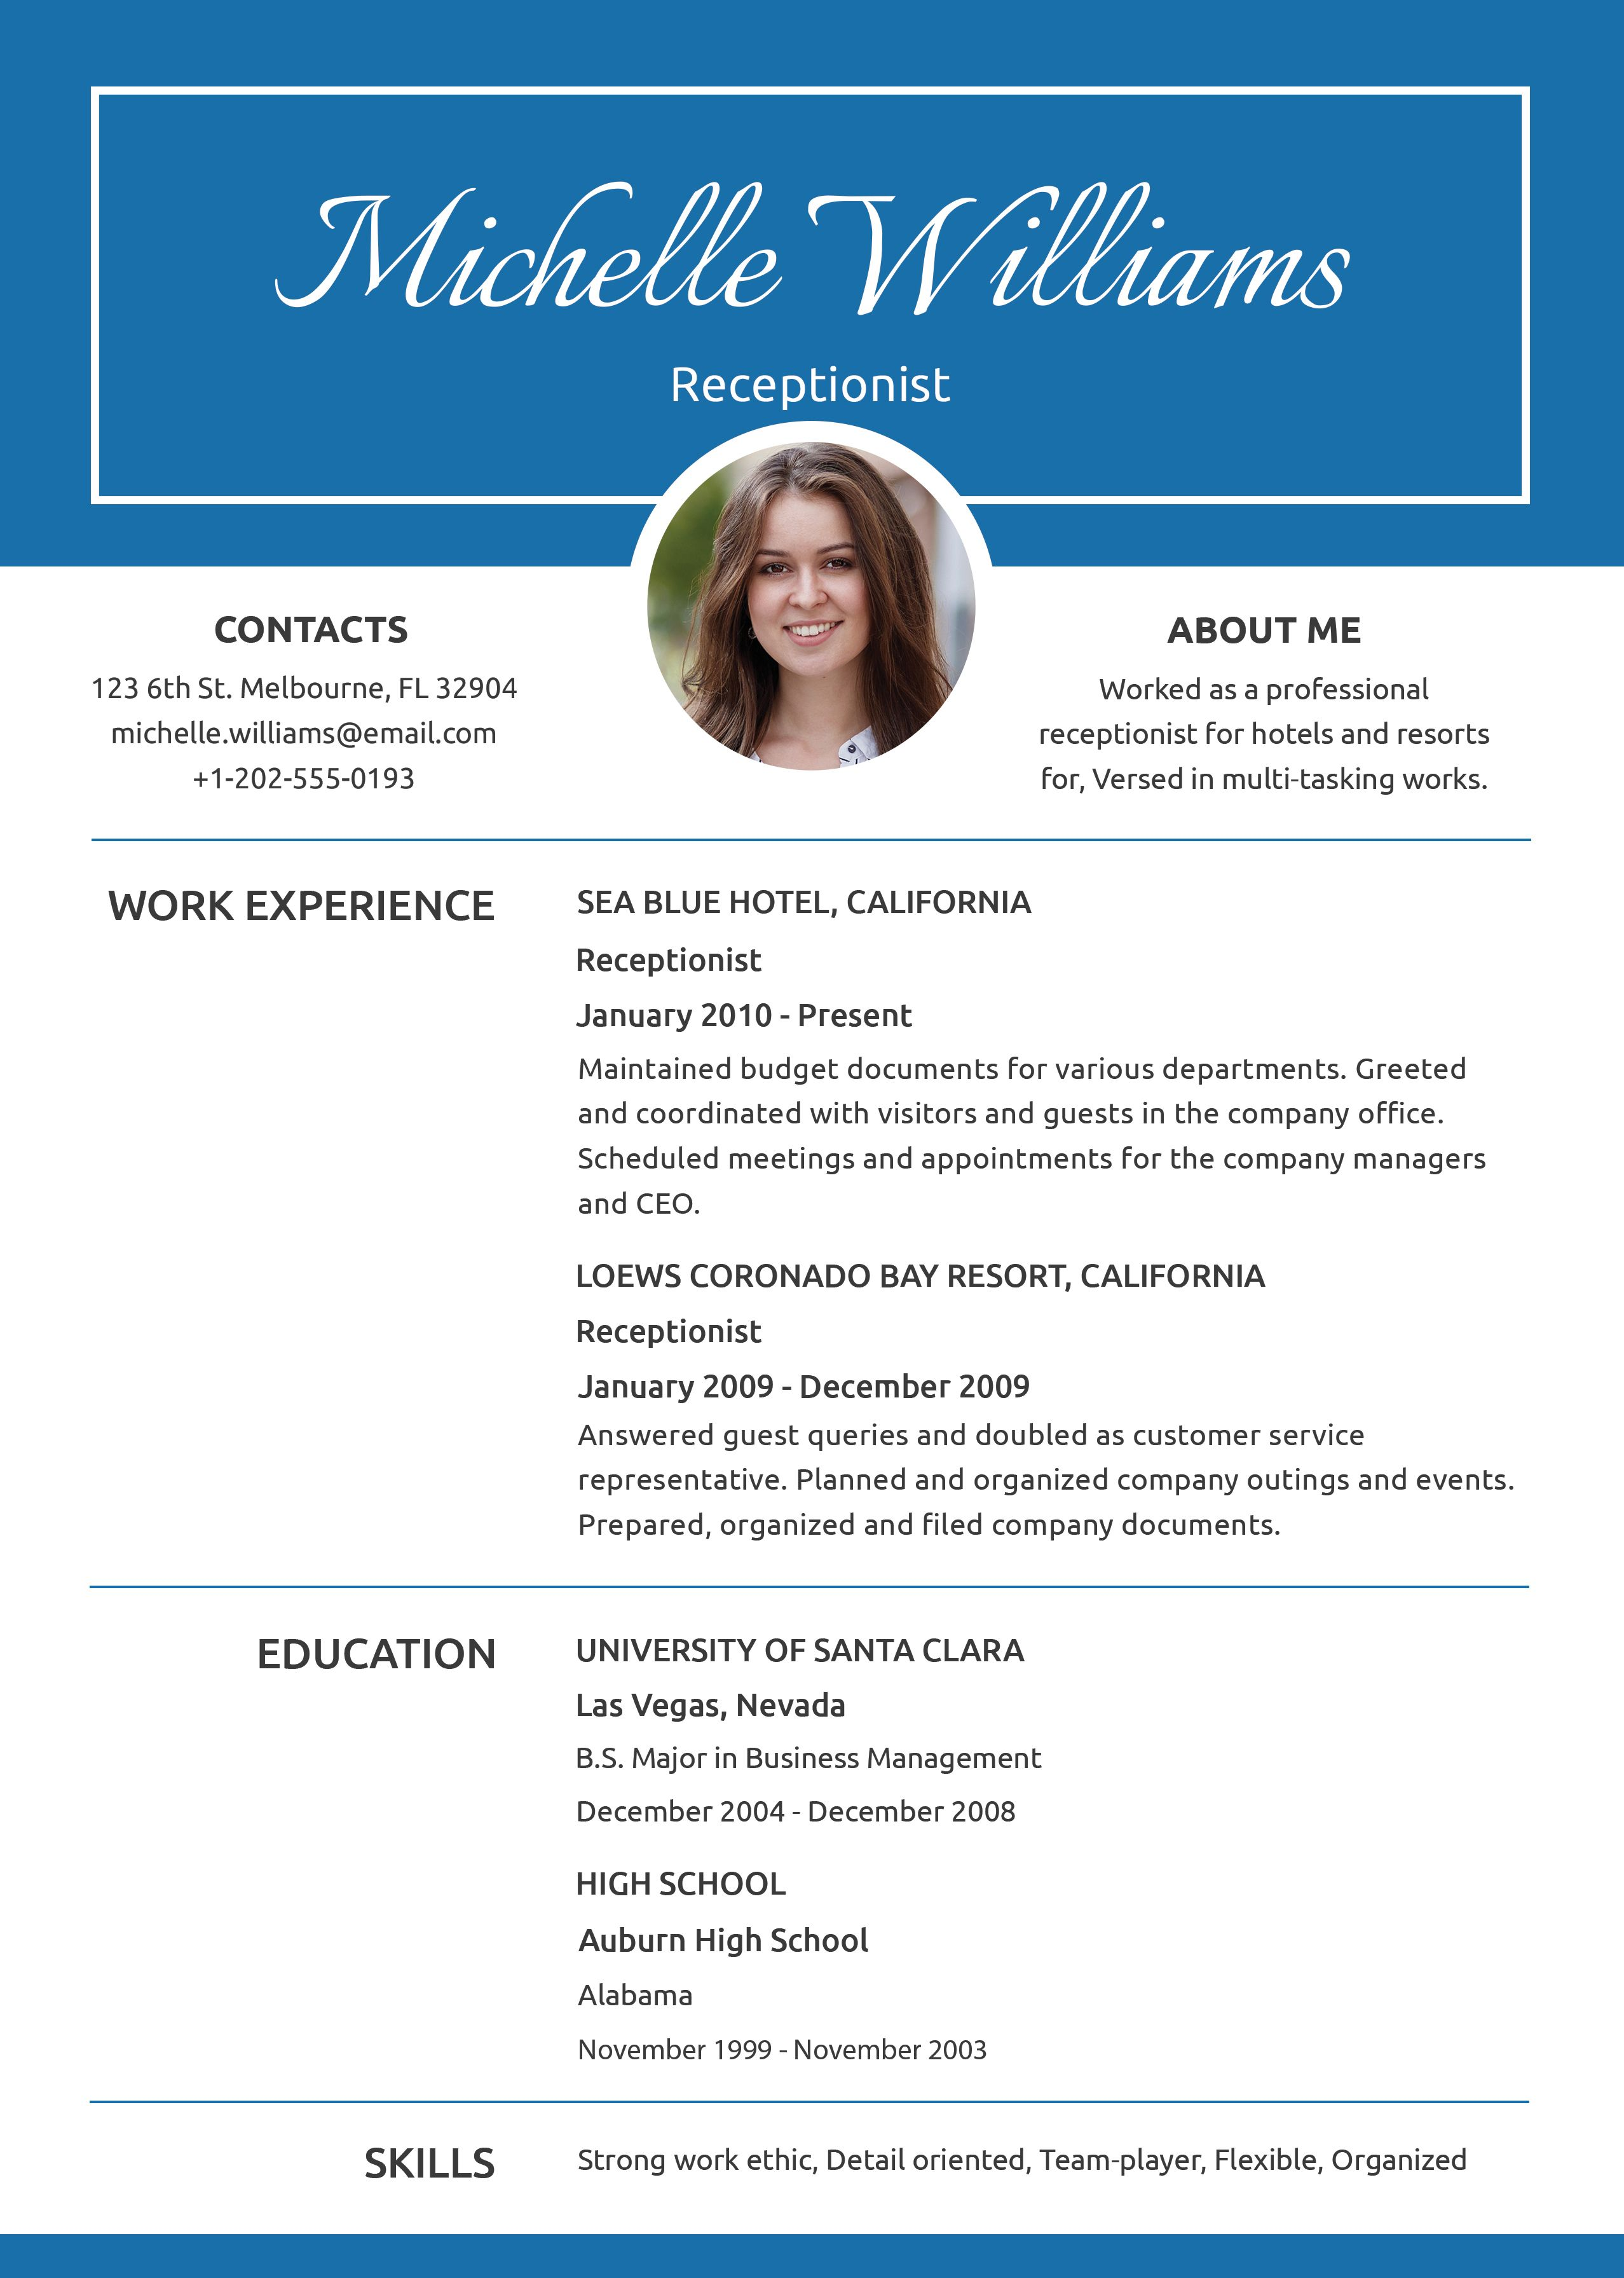 Free Receptionist Resume Template  Free Resume Templates